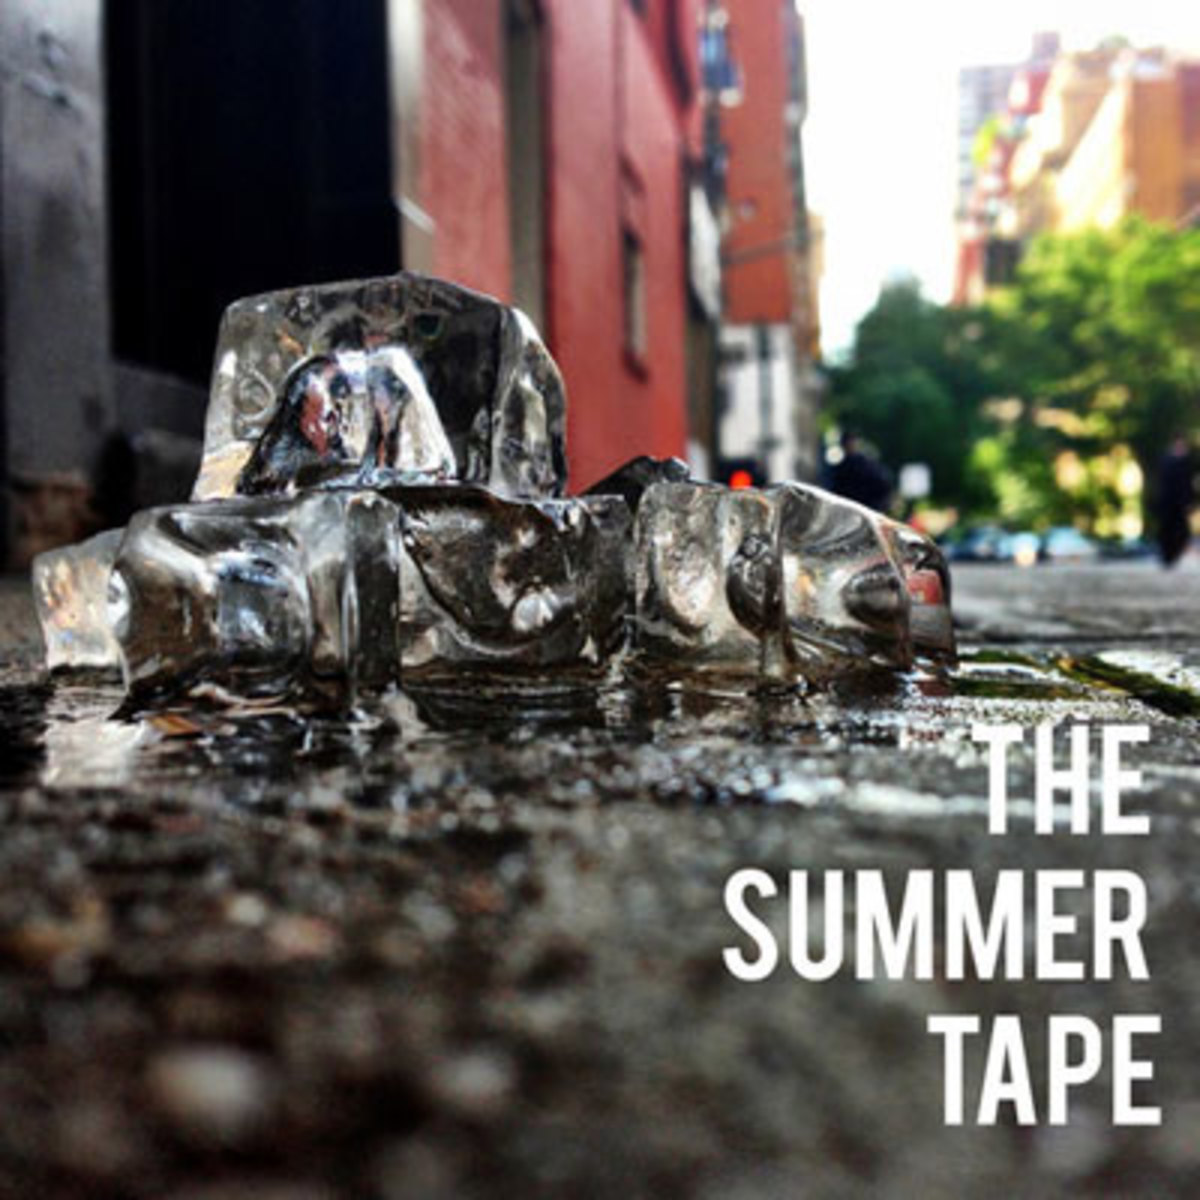 audibledoctor-thesummertape.jpg